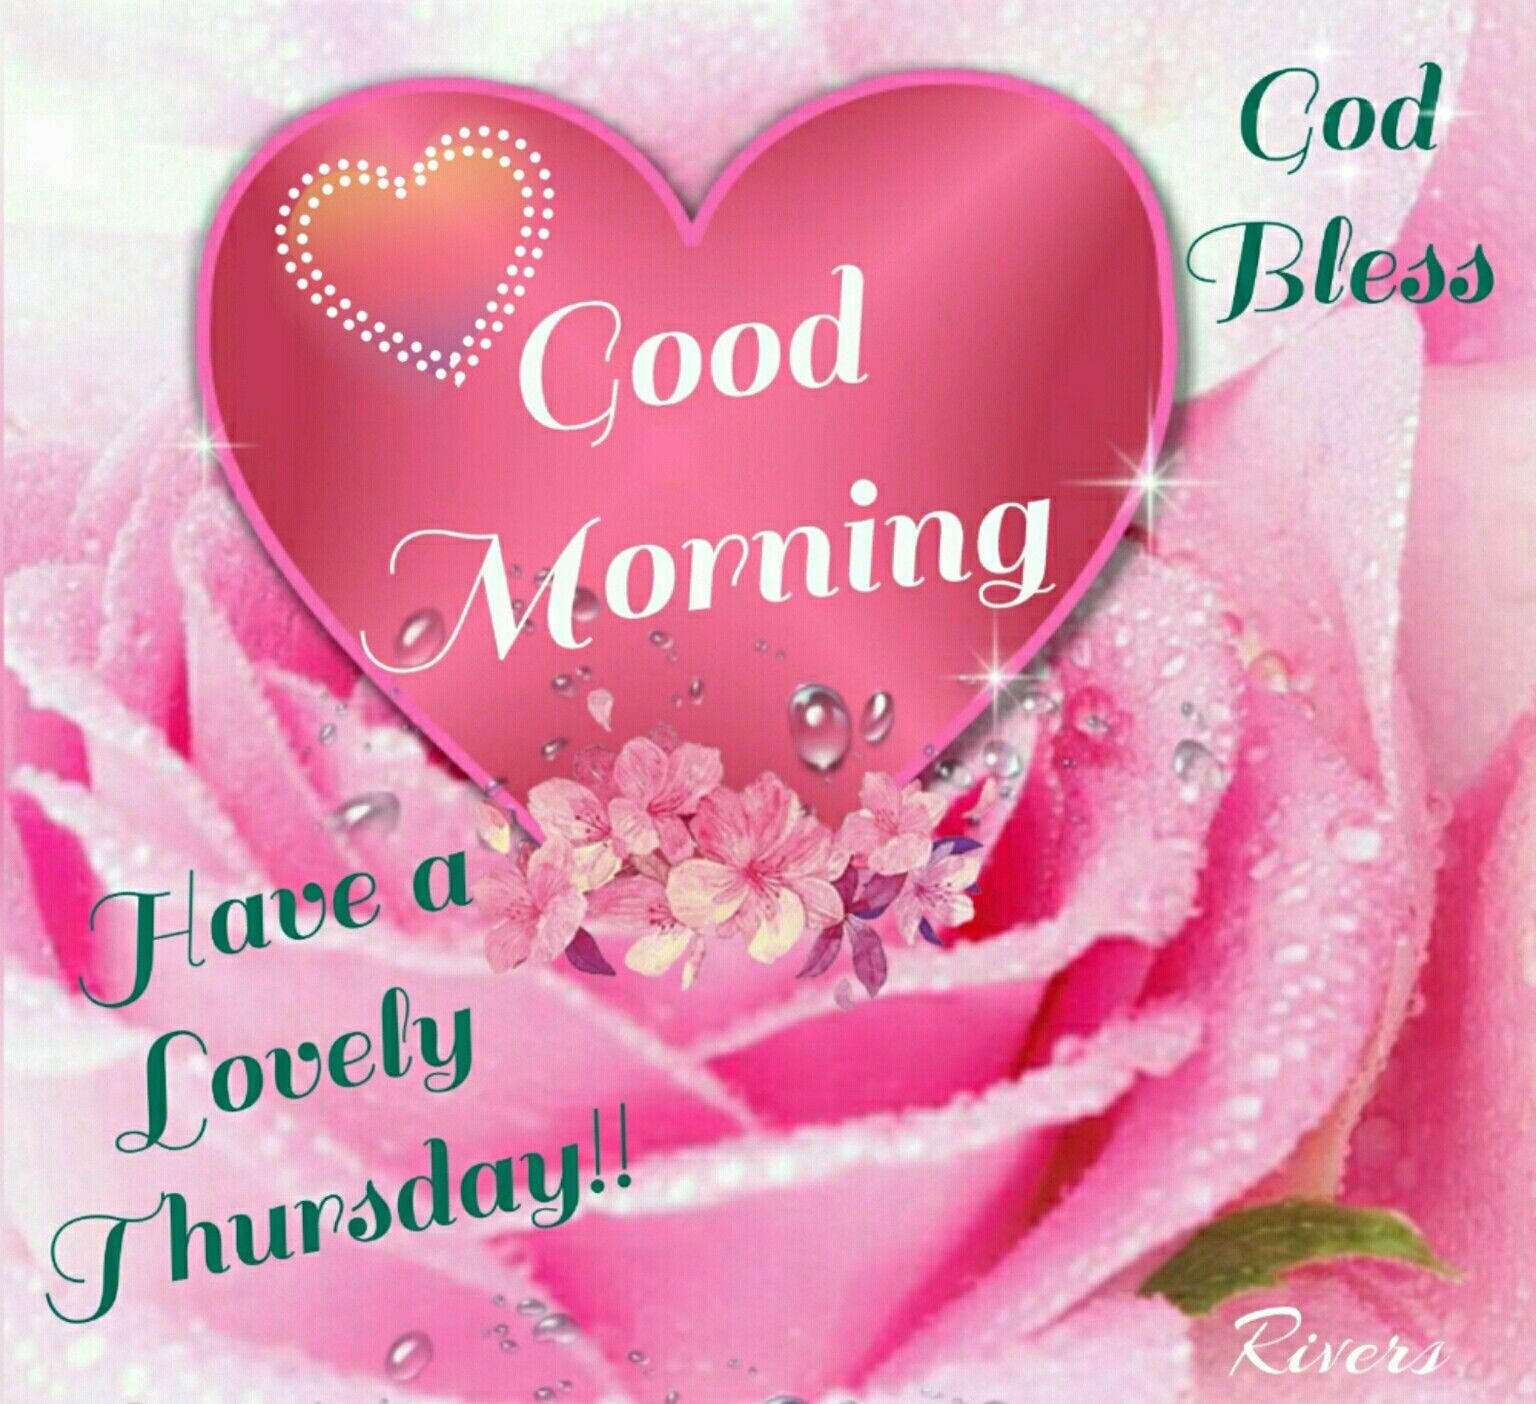 Good Morning Have A Lovely Thursday Pictures Photos And Images